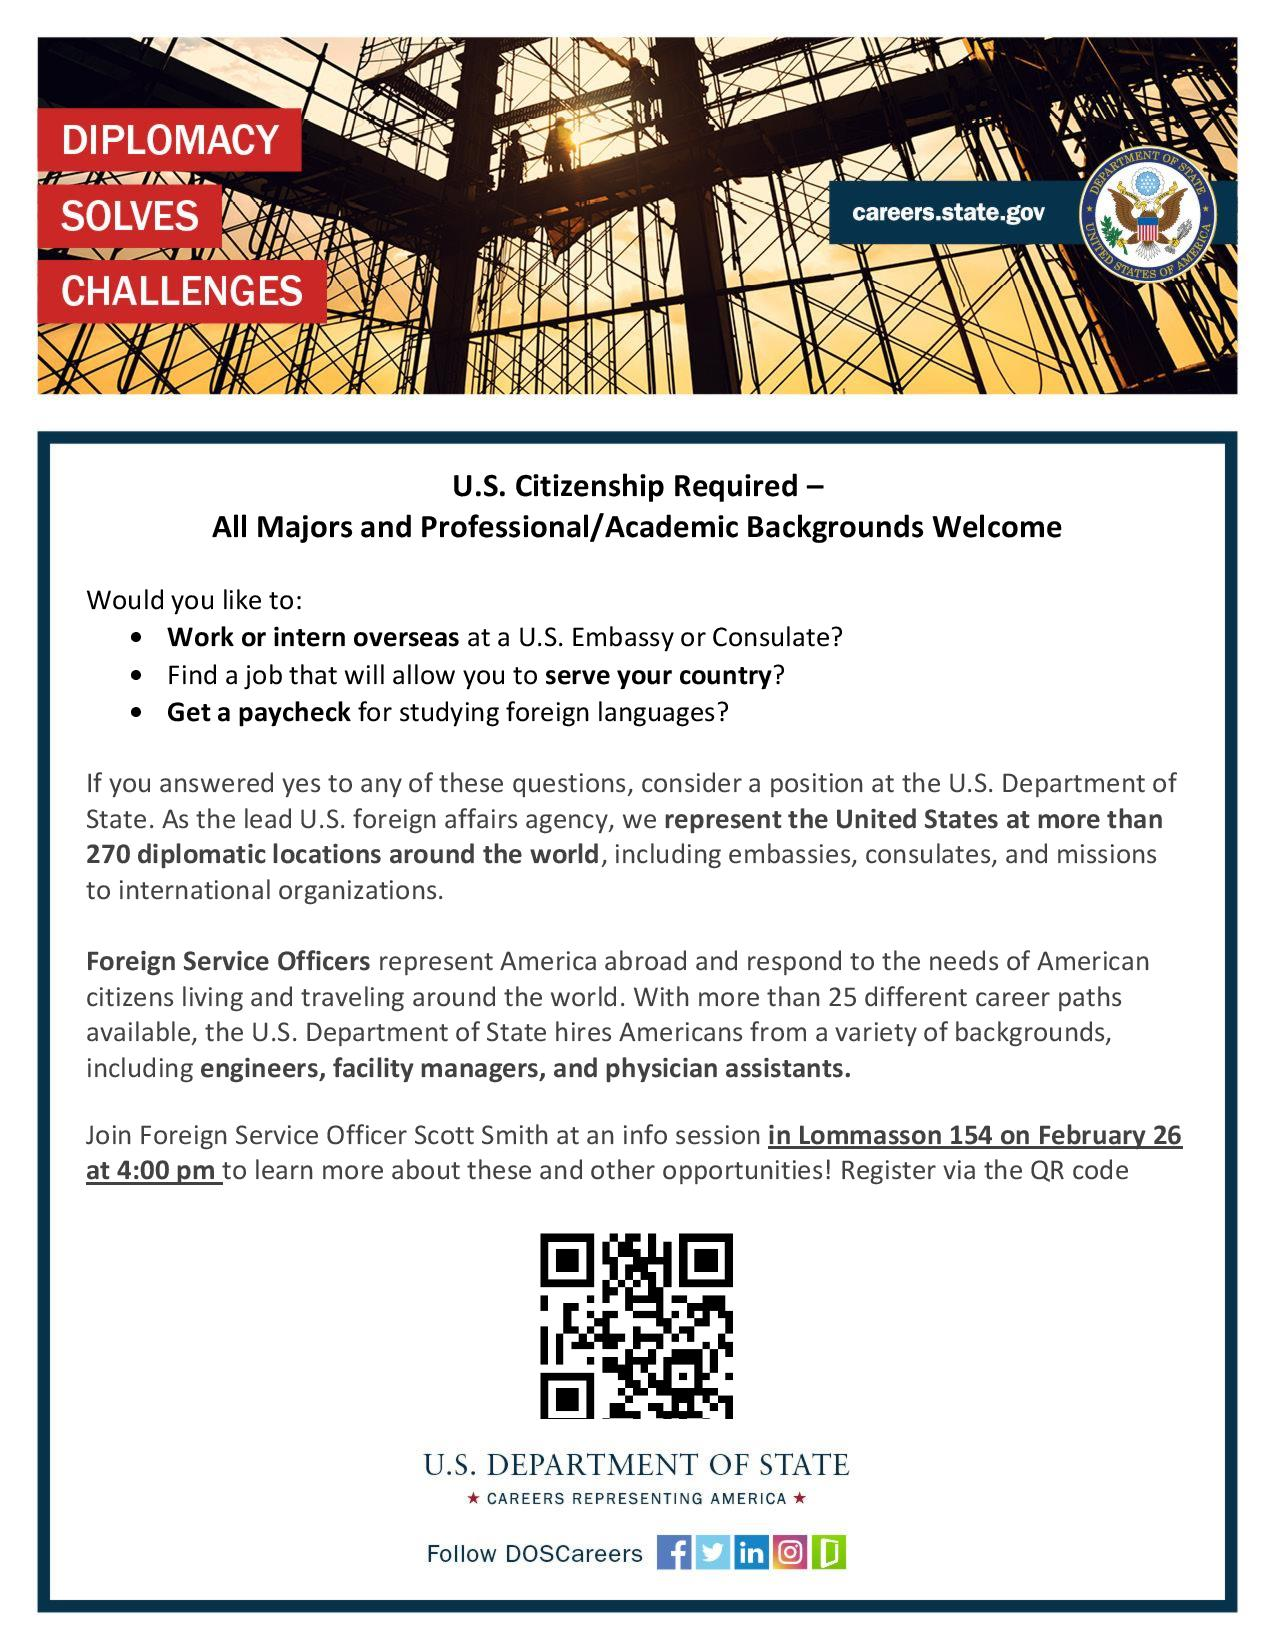 U.S. Citizenship Required –  All Majors and Professional/Academic Backgrounds Welcome  Would you like to: •Work or intern overseas at a U.S. Embassy or Consulate? •Find a job that will allow you to serve your country? •Get a paycheck for studying foreign languages?  If you answered yes to any of these questions, consider a position at the U.S. Department of State. As the lead U.S. foreign affairs agency, we represent the United States at more than 270 diplomatic locations around the world, including embassies, consulates, and missions to international organizations.  Foreign Service Officers represent America abroad and respond to the needs of American citizens living and traveling around the world. With more than 25 different career paths available, the U.S. Department of State hires Americans from a variety of backgrounds, including engineers, facility managers, and physician assistants.  Join Foreign Service Officer Scott Smith at an info session in Lommasson 154 on February 26 at 4:00 pm to learn more about these and other opportunities! Register via the QR code